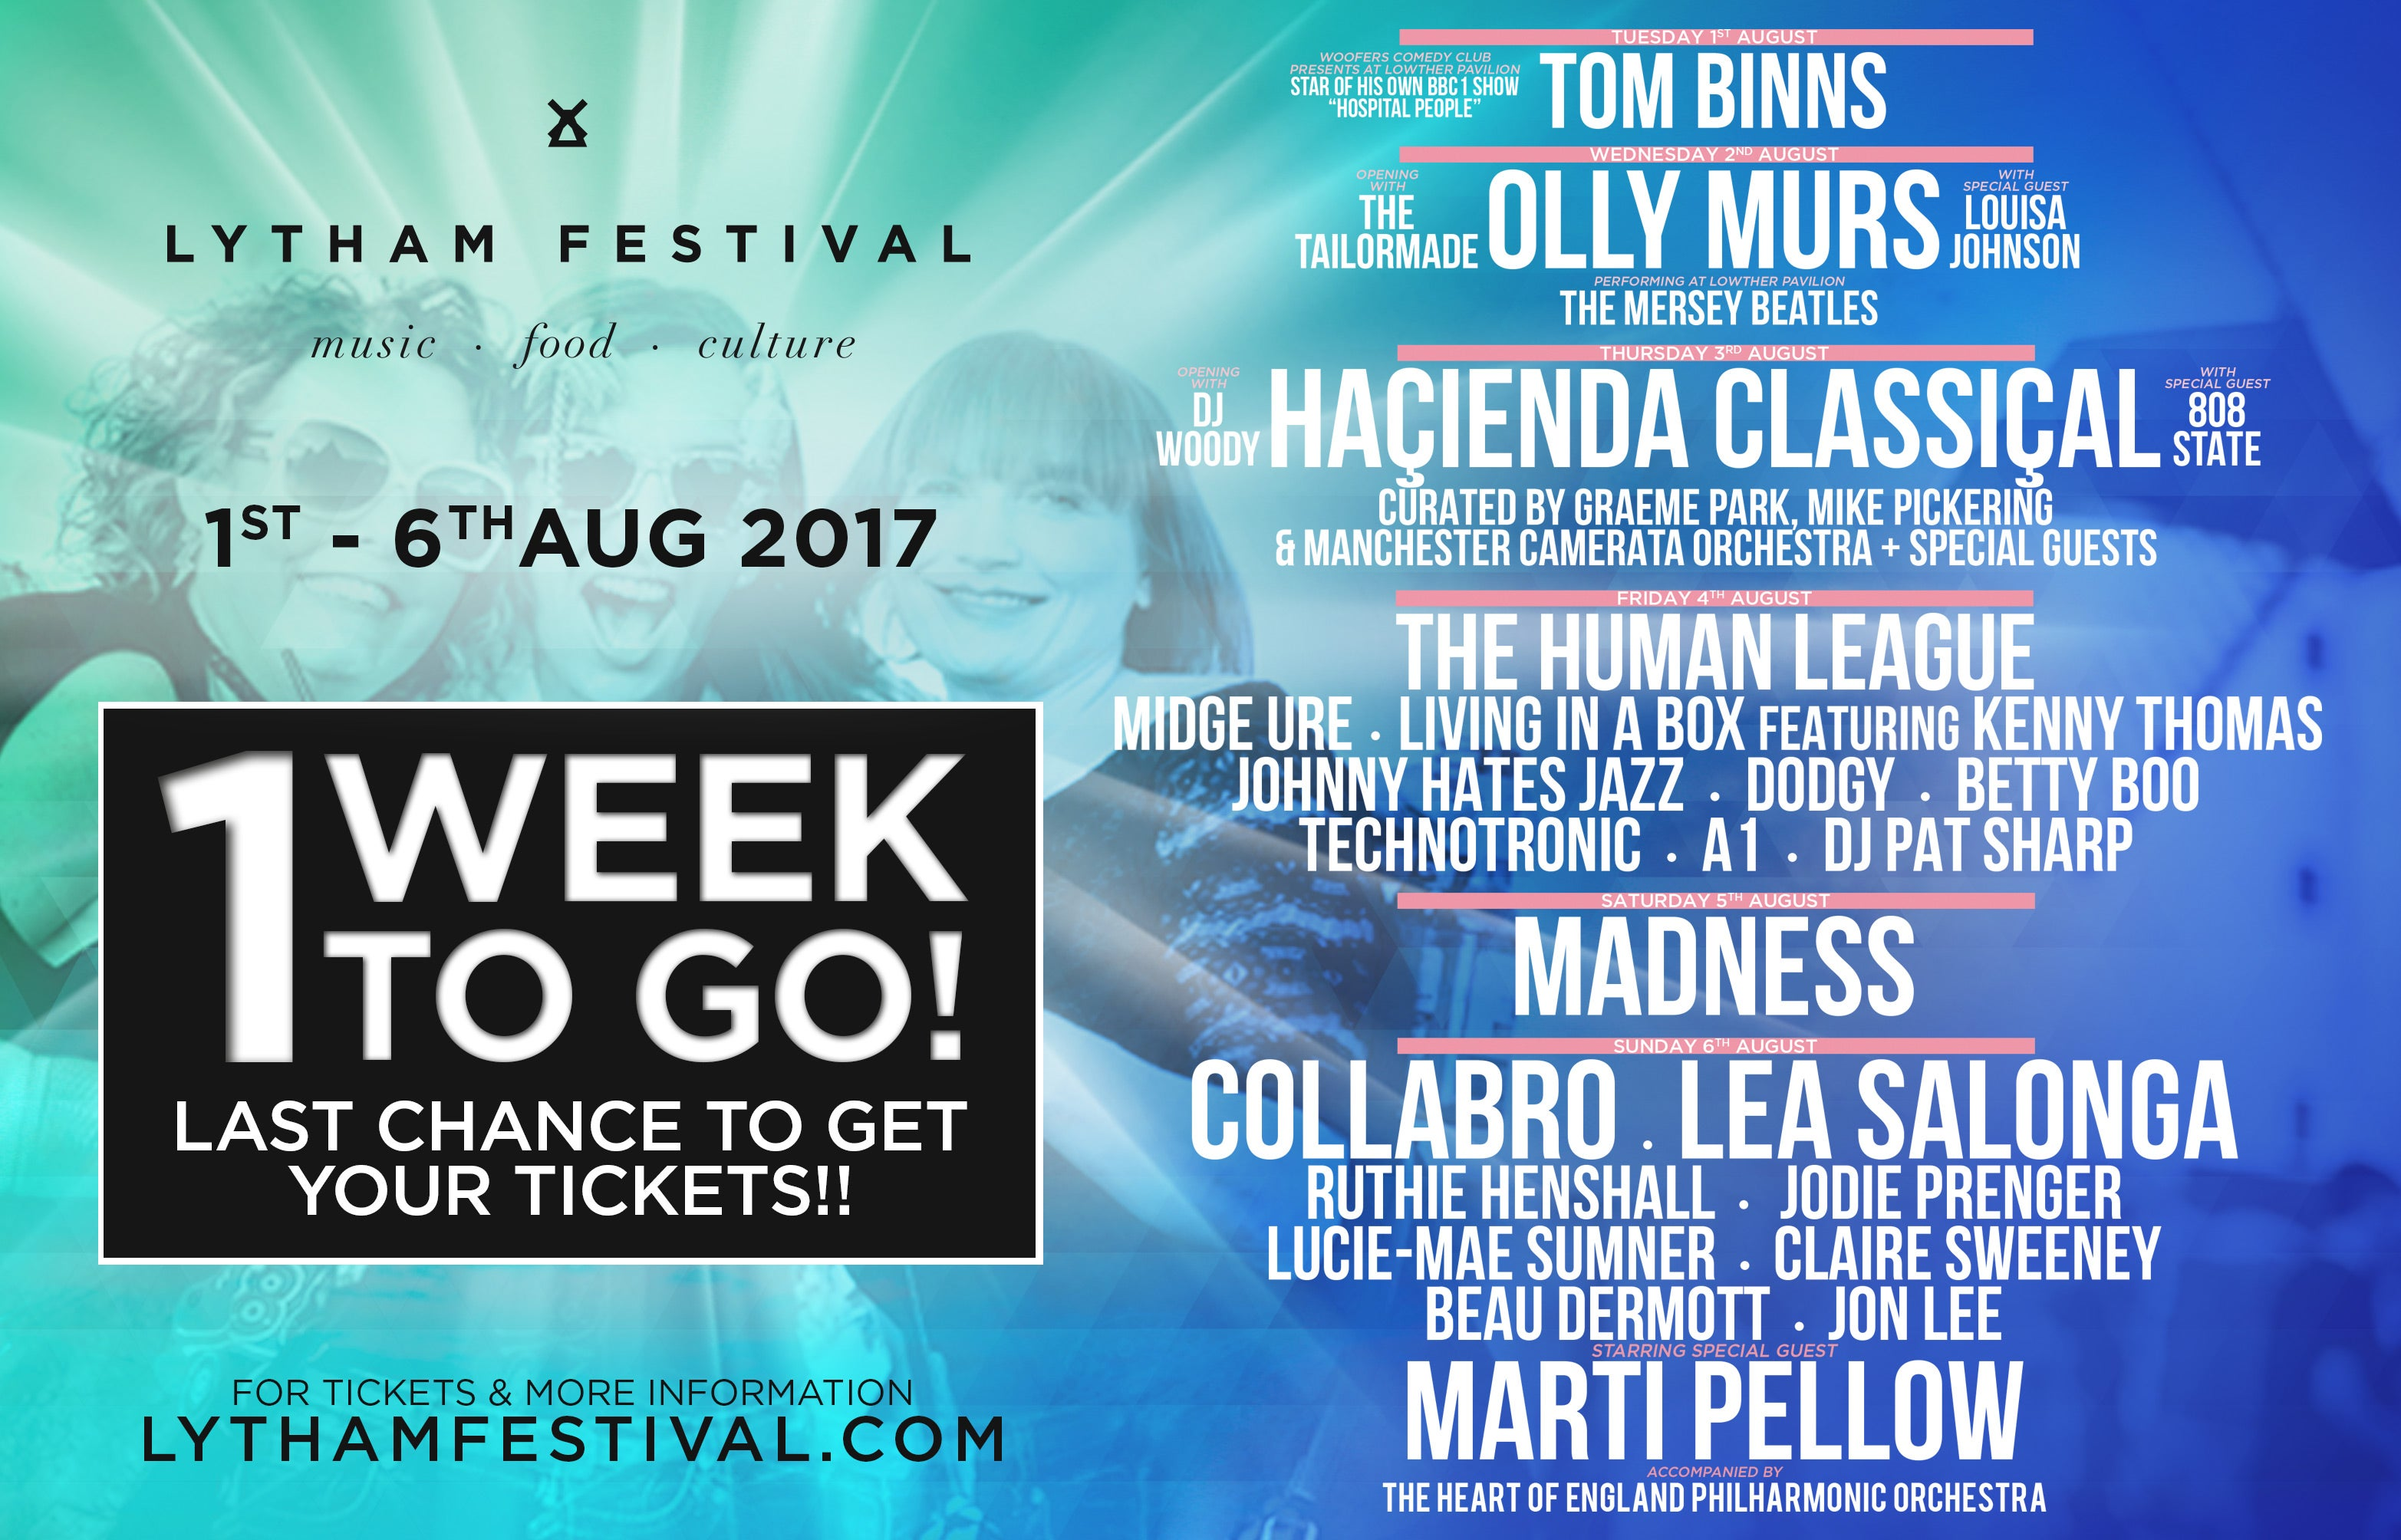 Lytham Festival: One Week To Go!